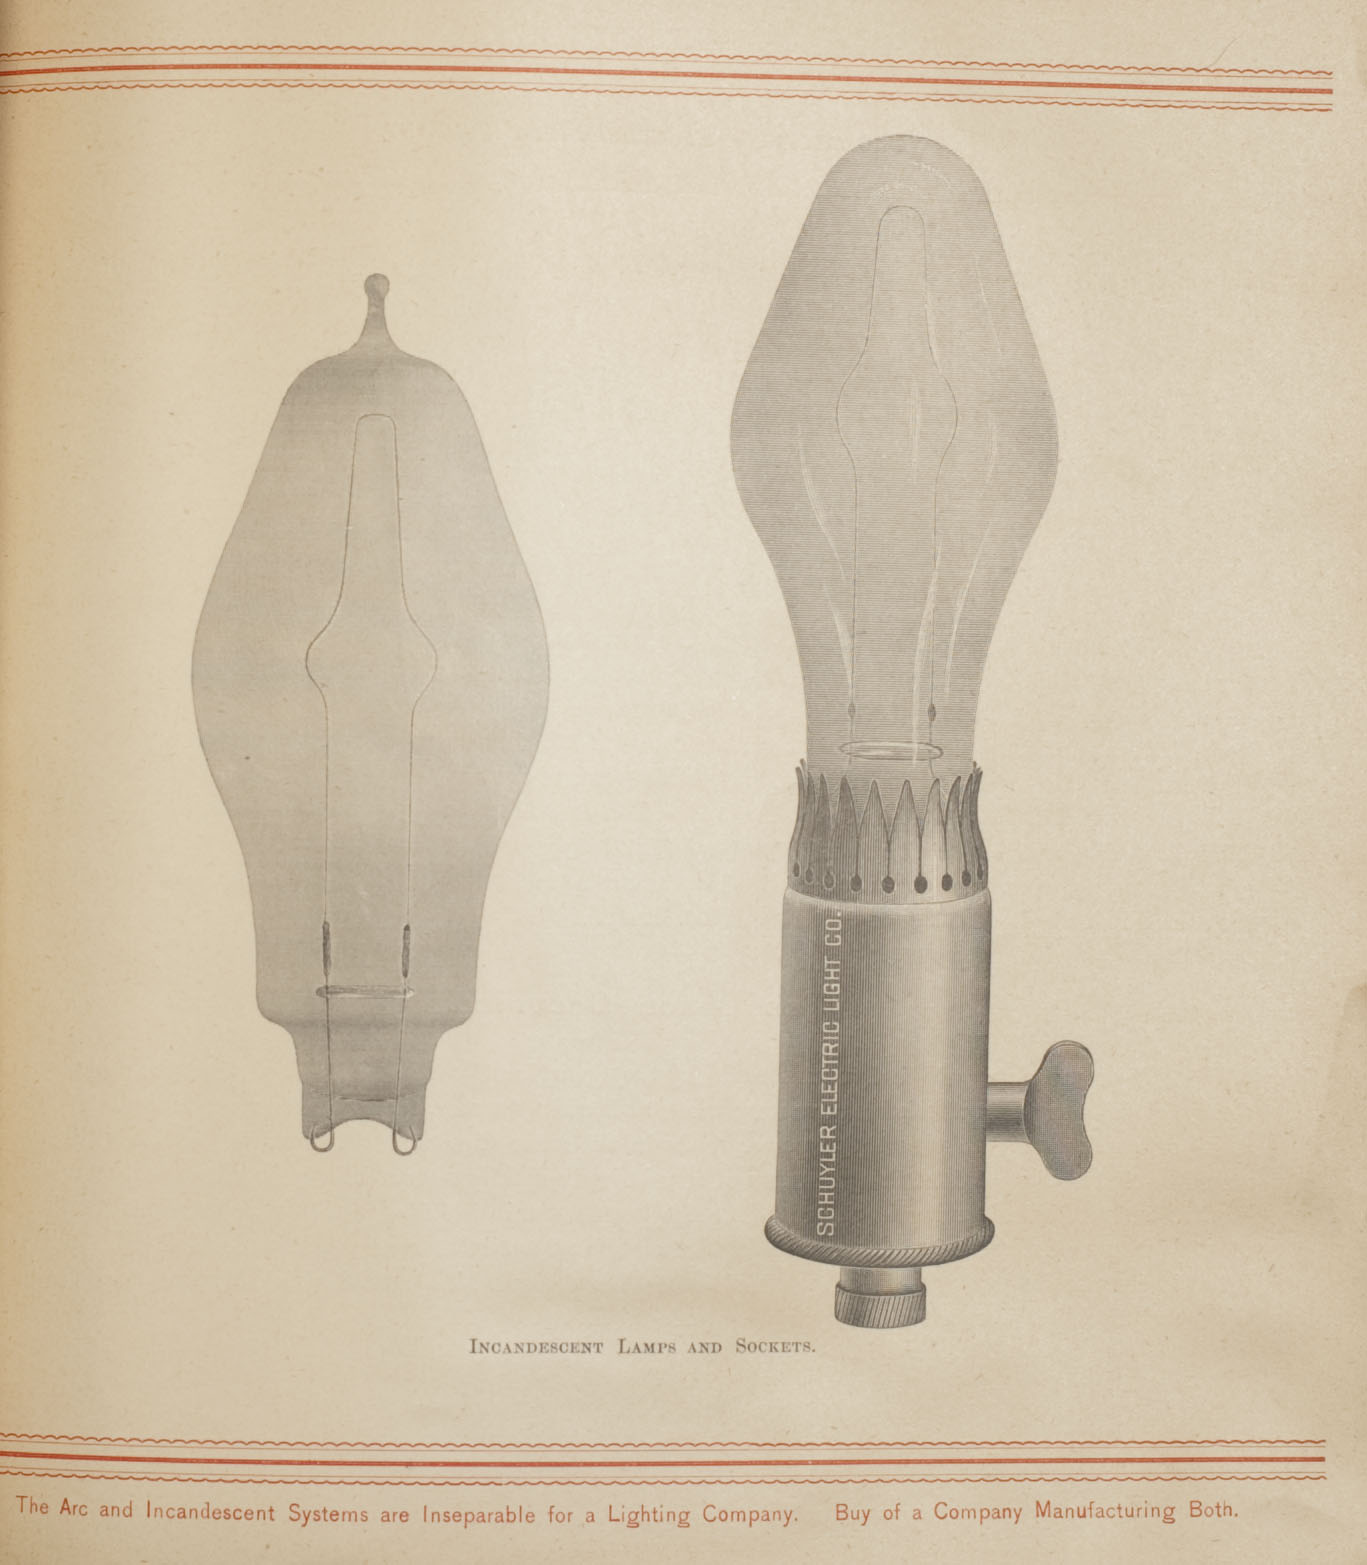 Incandescent lamps and sockets